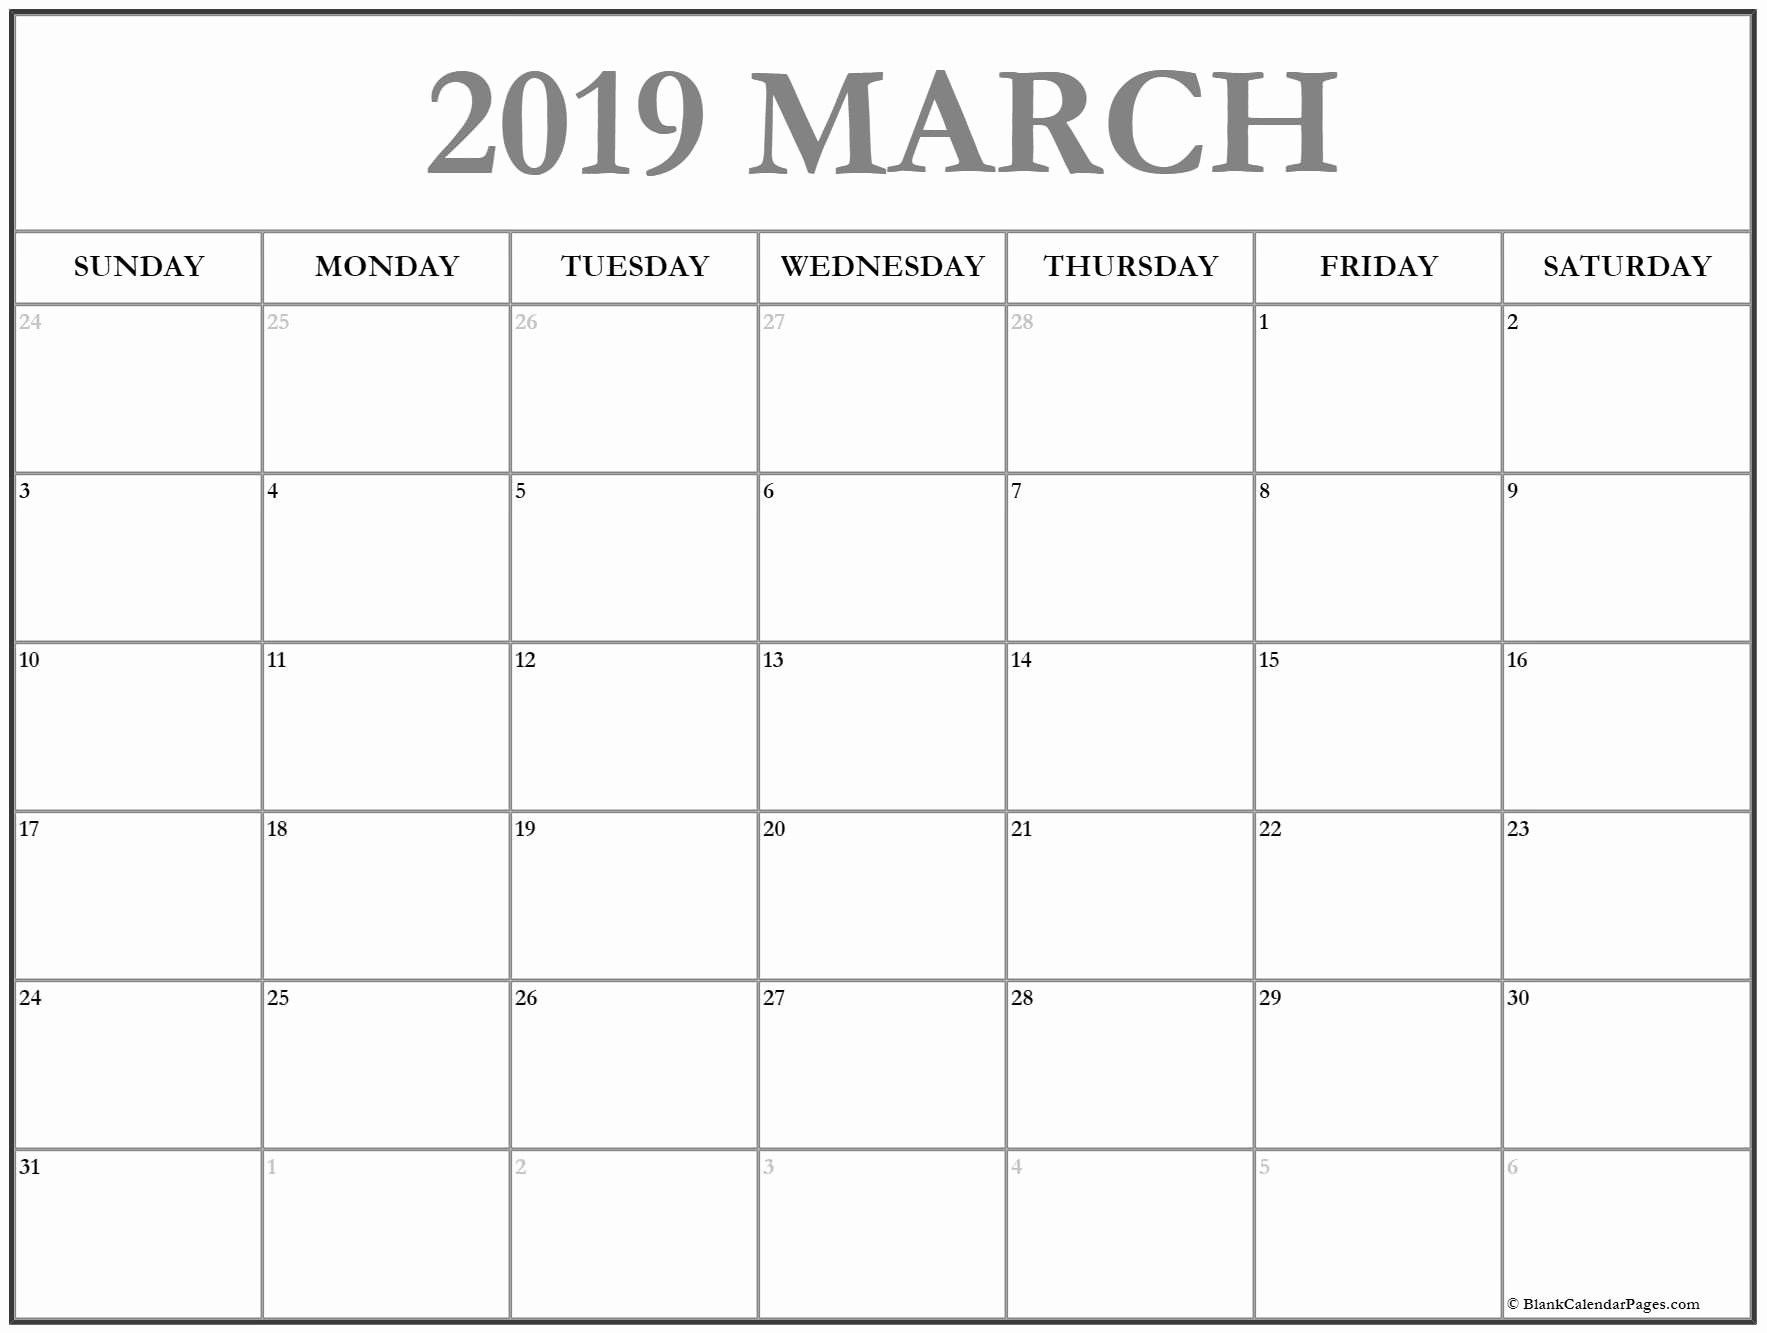 Monthly Calendar Template March 2019